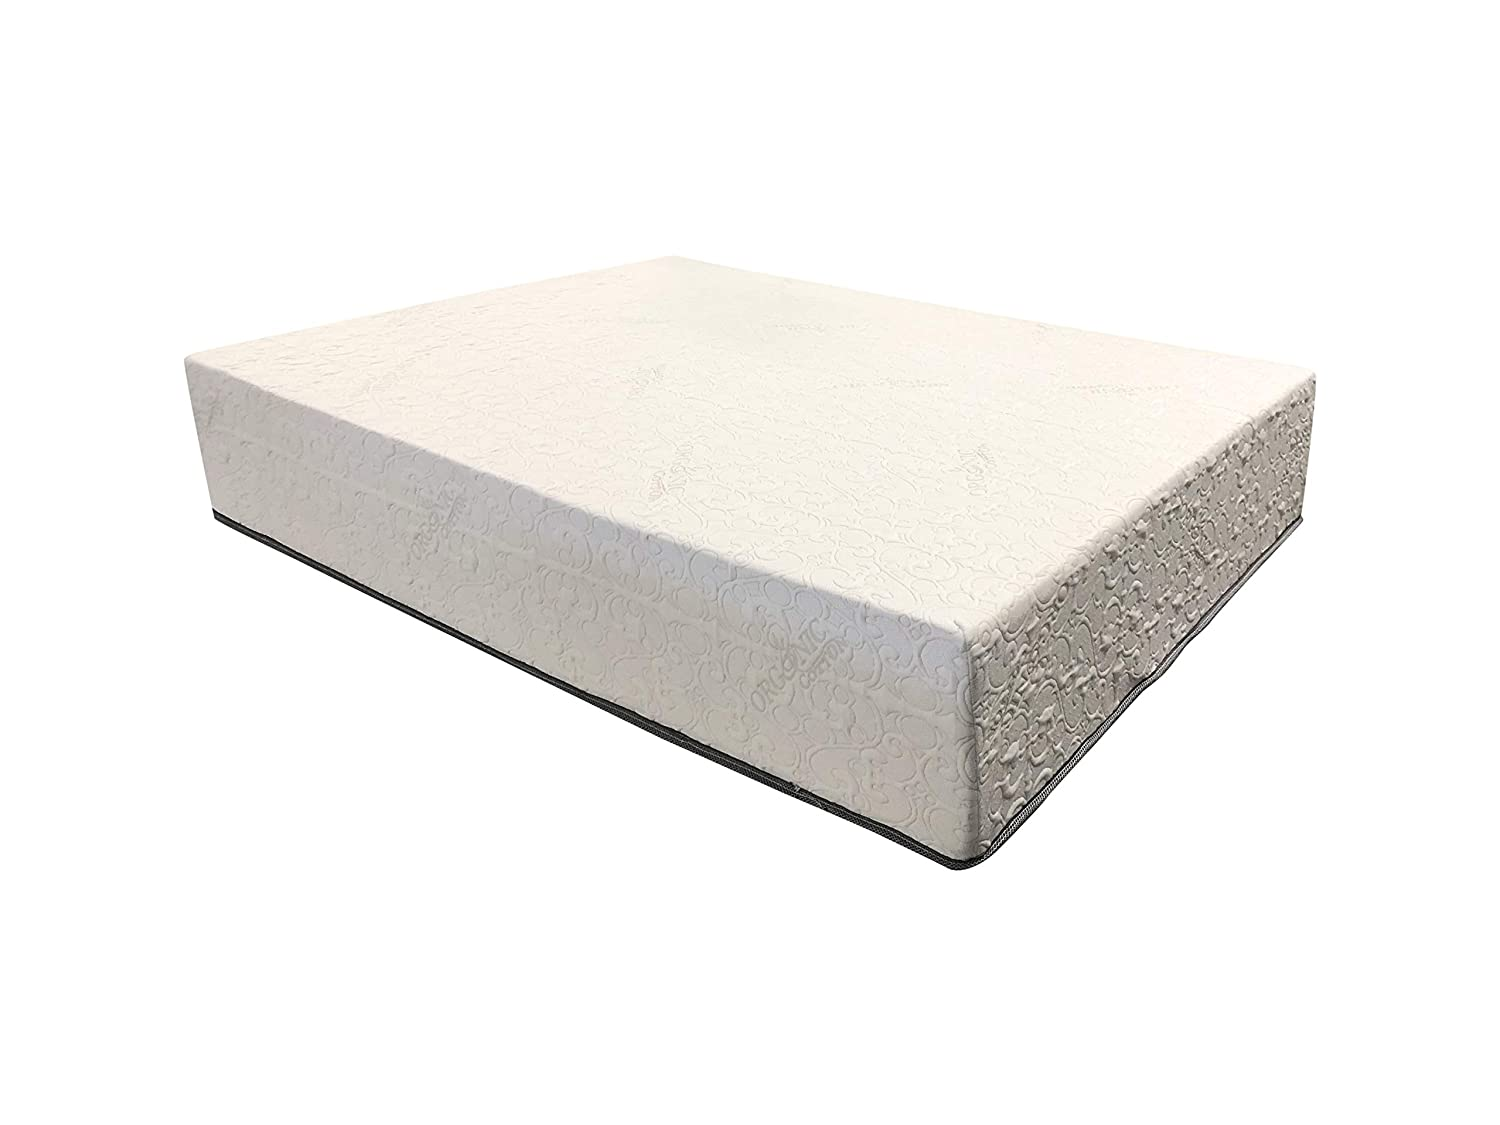 Amazon.com: 6 Inch Memory Foam Mattress Size Short Queen: Kitchen & Dining